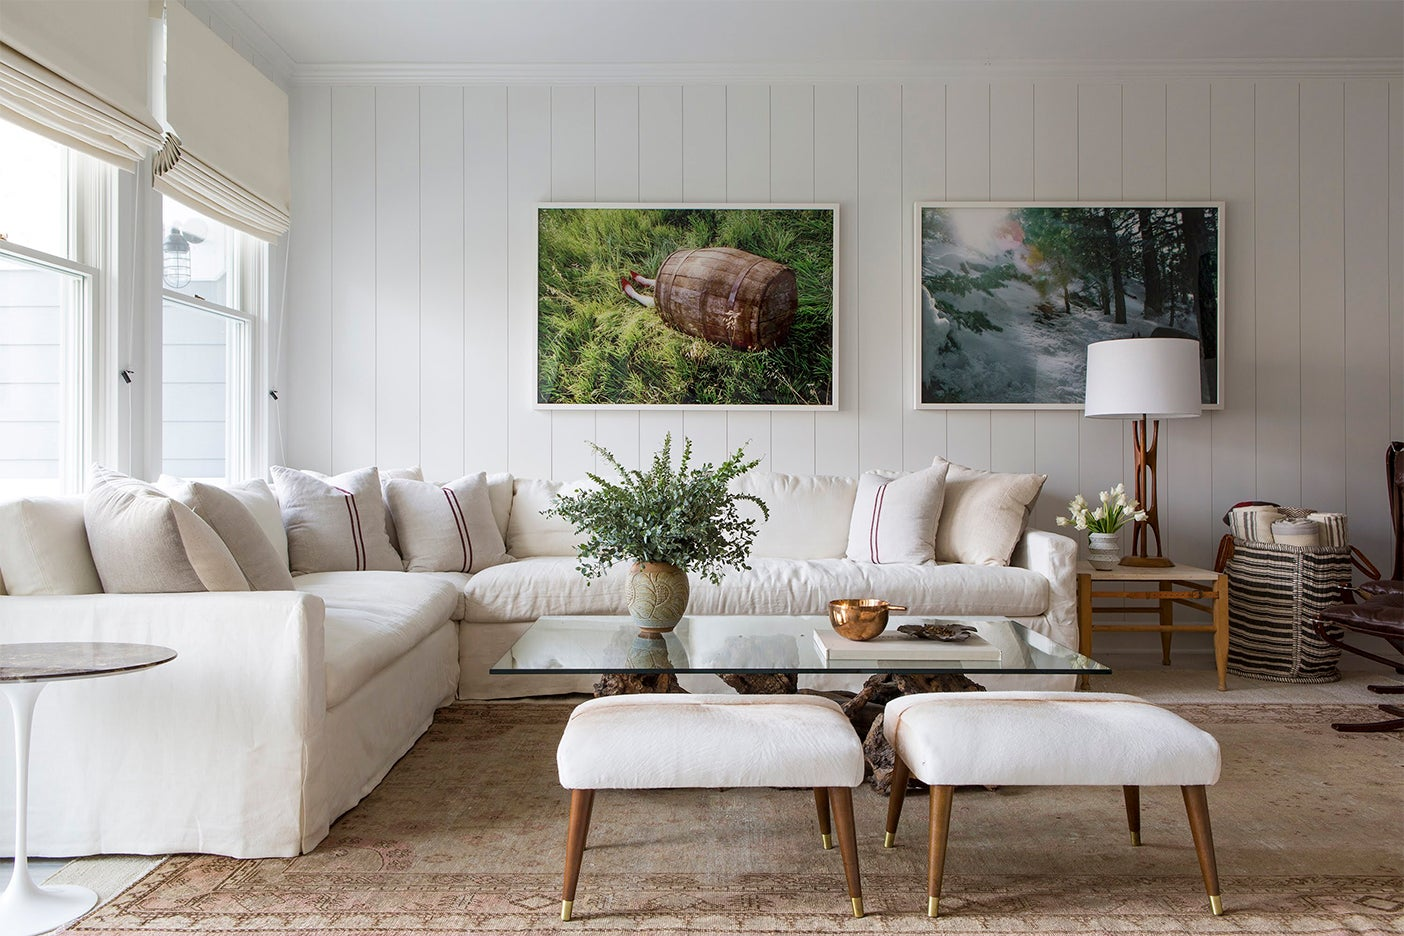 Large sectional sofa in a living room